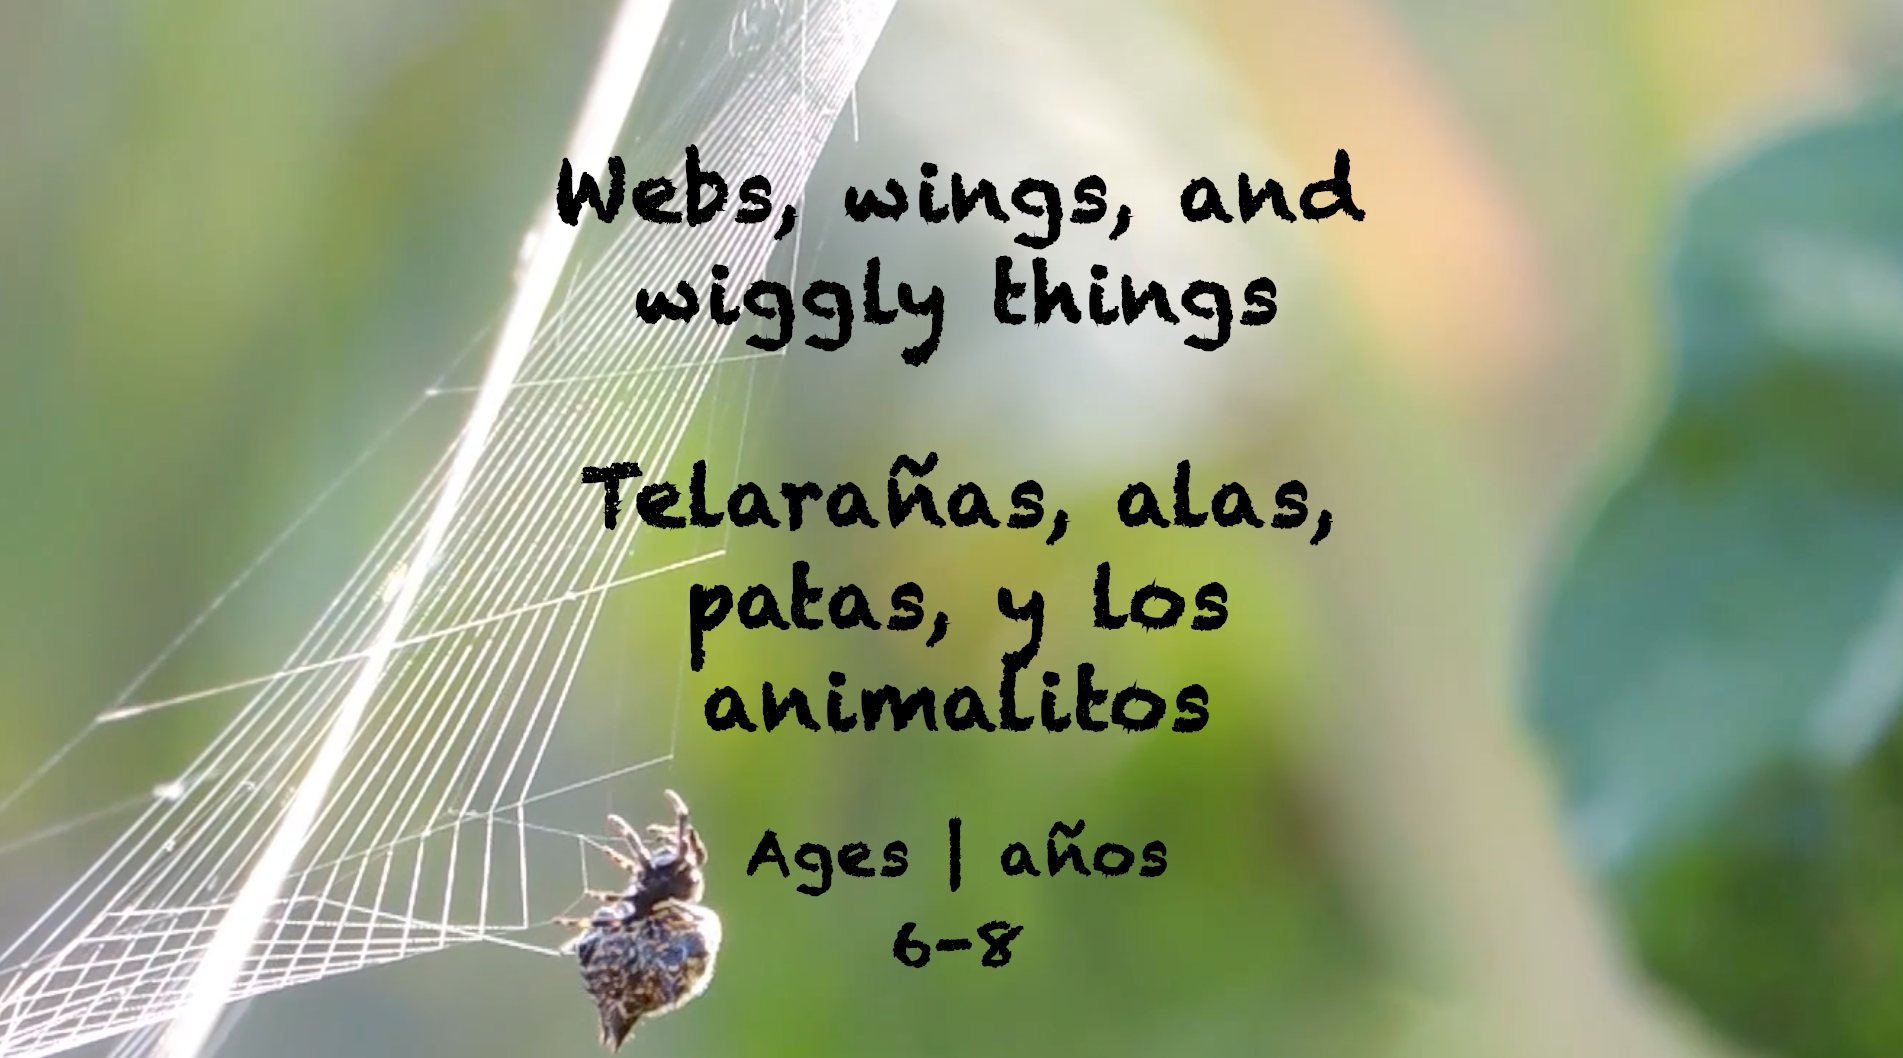 Week 36 Webs Wings and Wiggly Things Card Ages 6-8